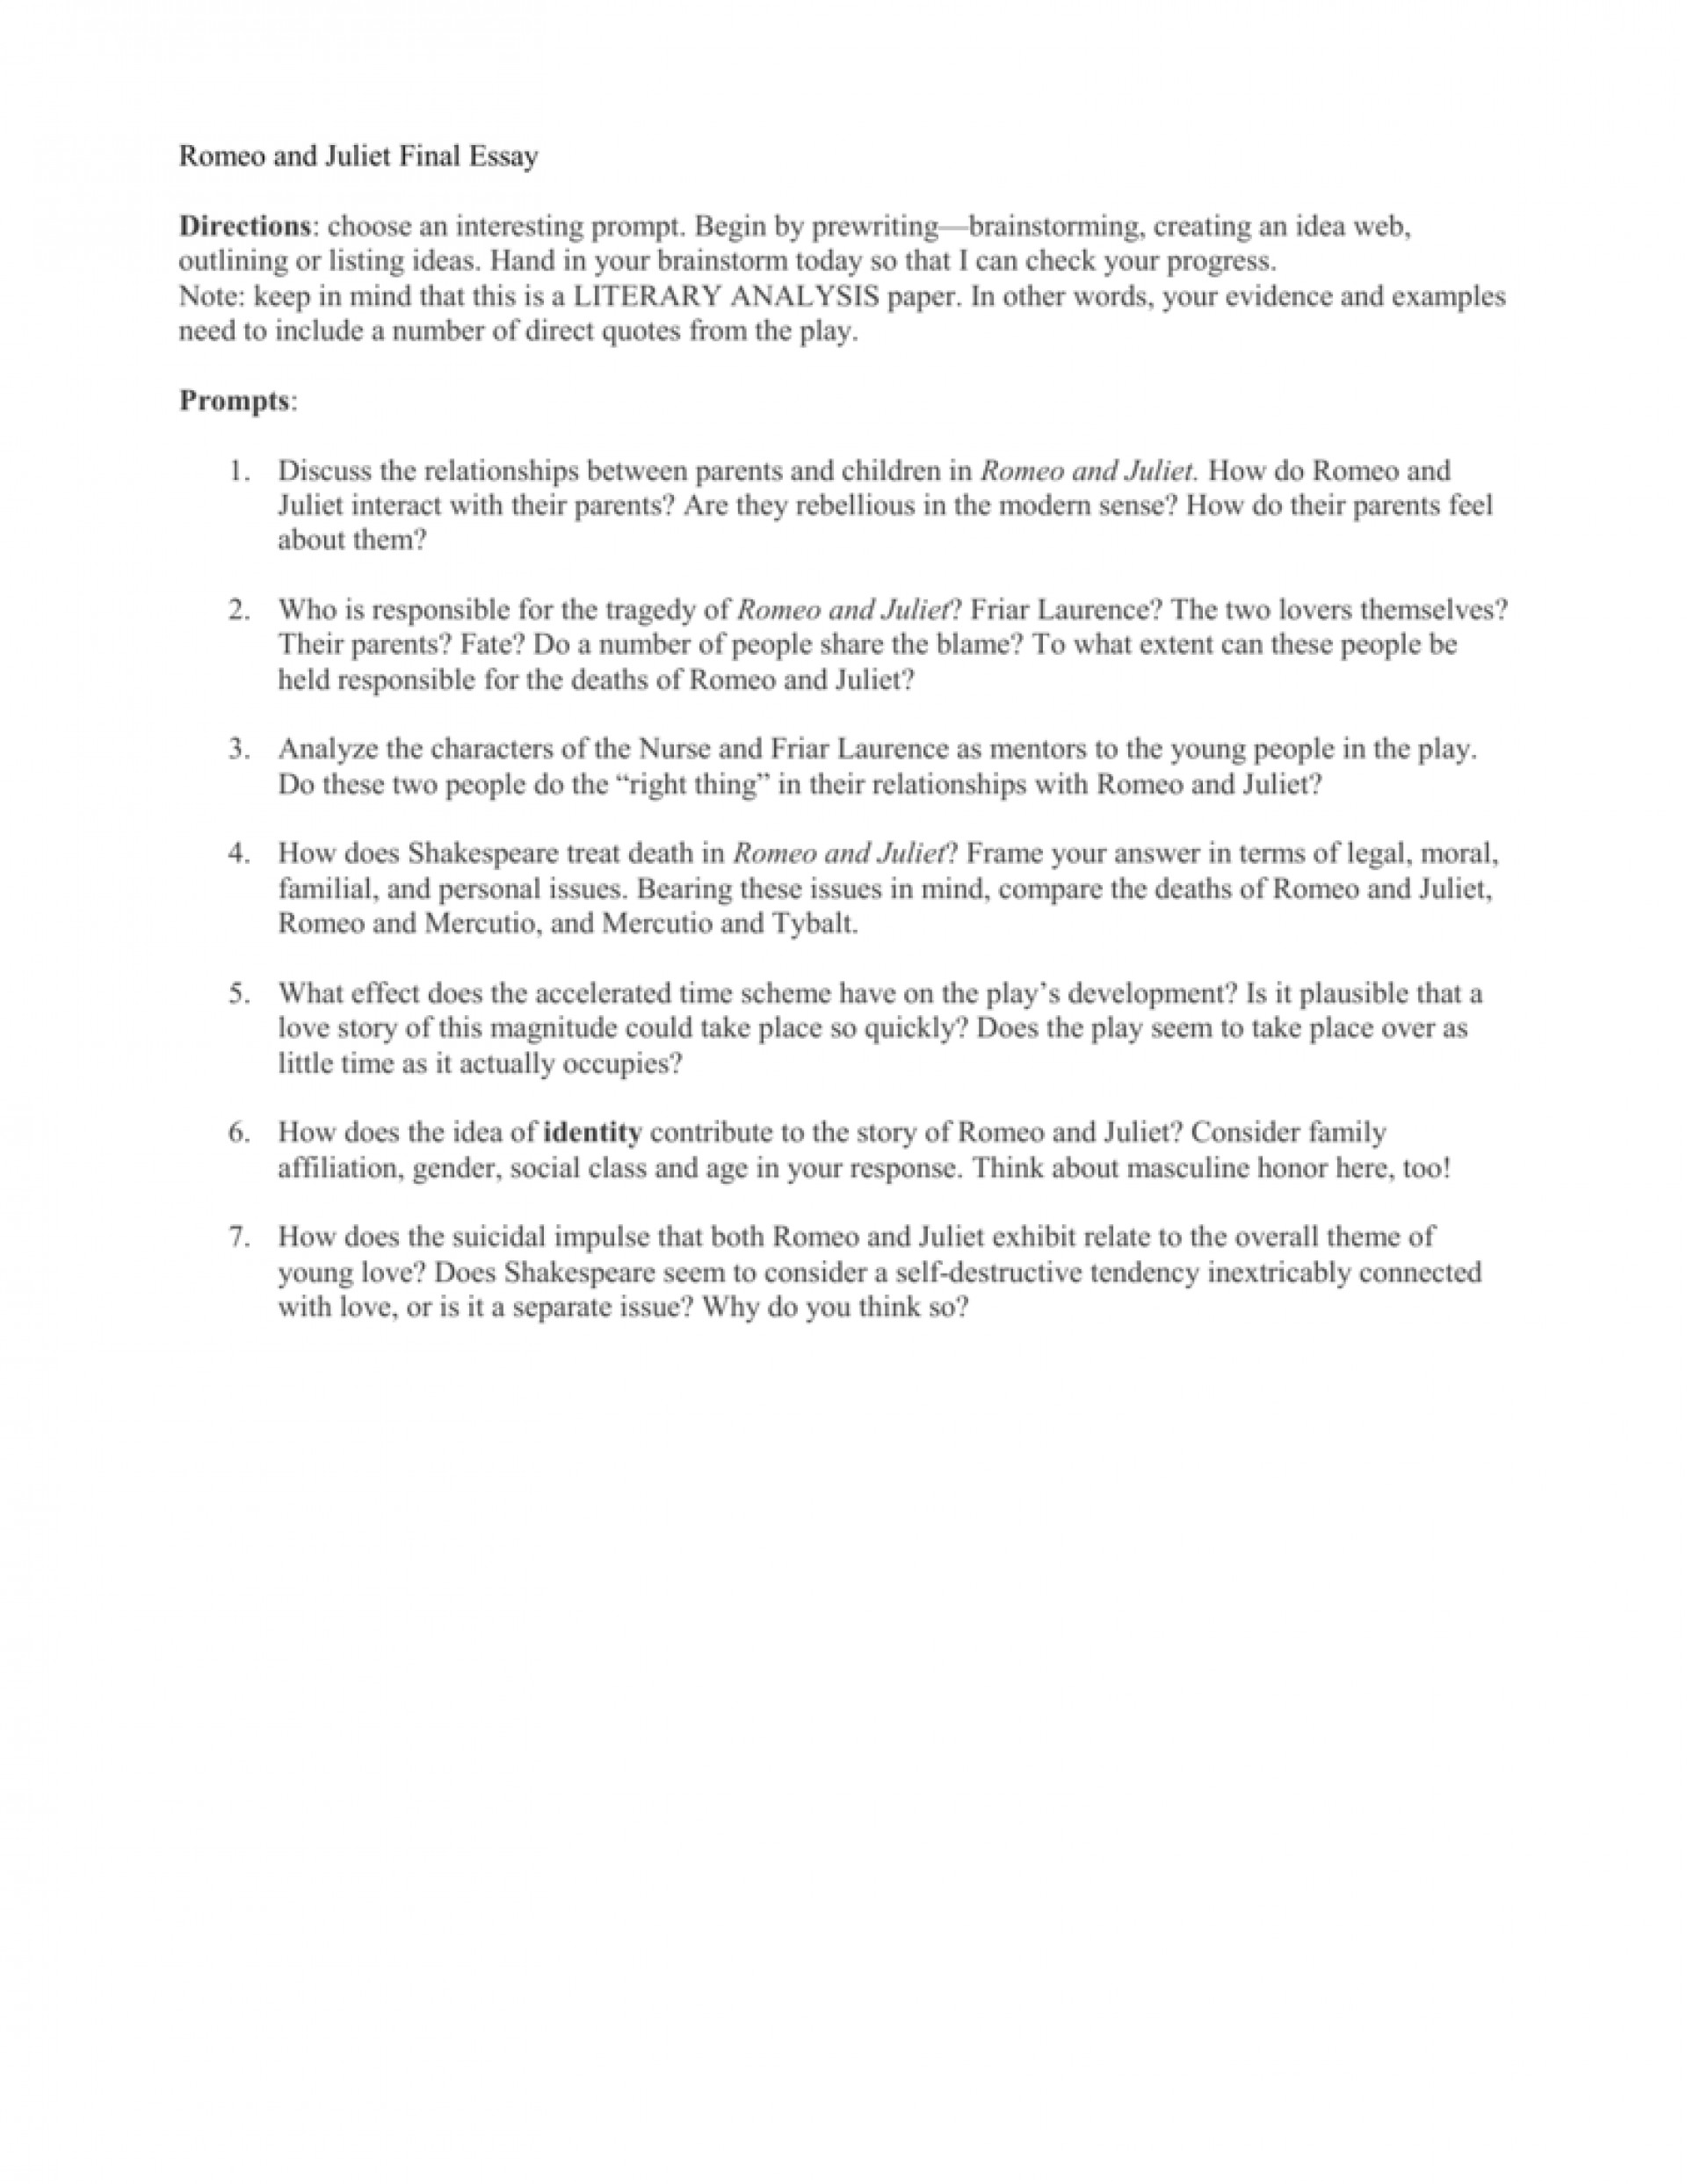 002 Romeo And Juliet Essay Topics 008016436 1 Astounding Pdf Questions Grade 10 Answers 1920